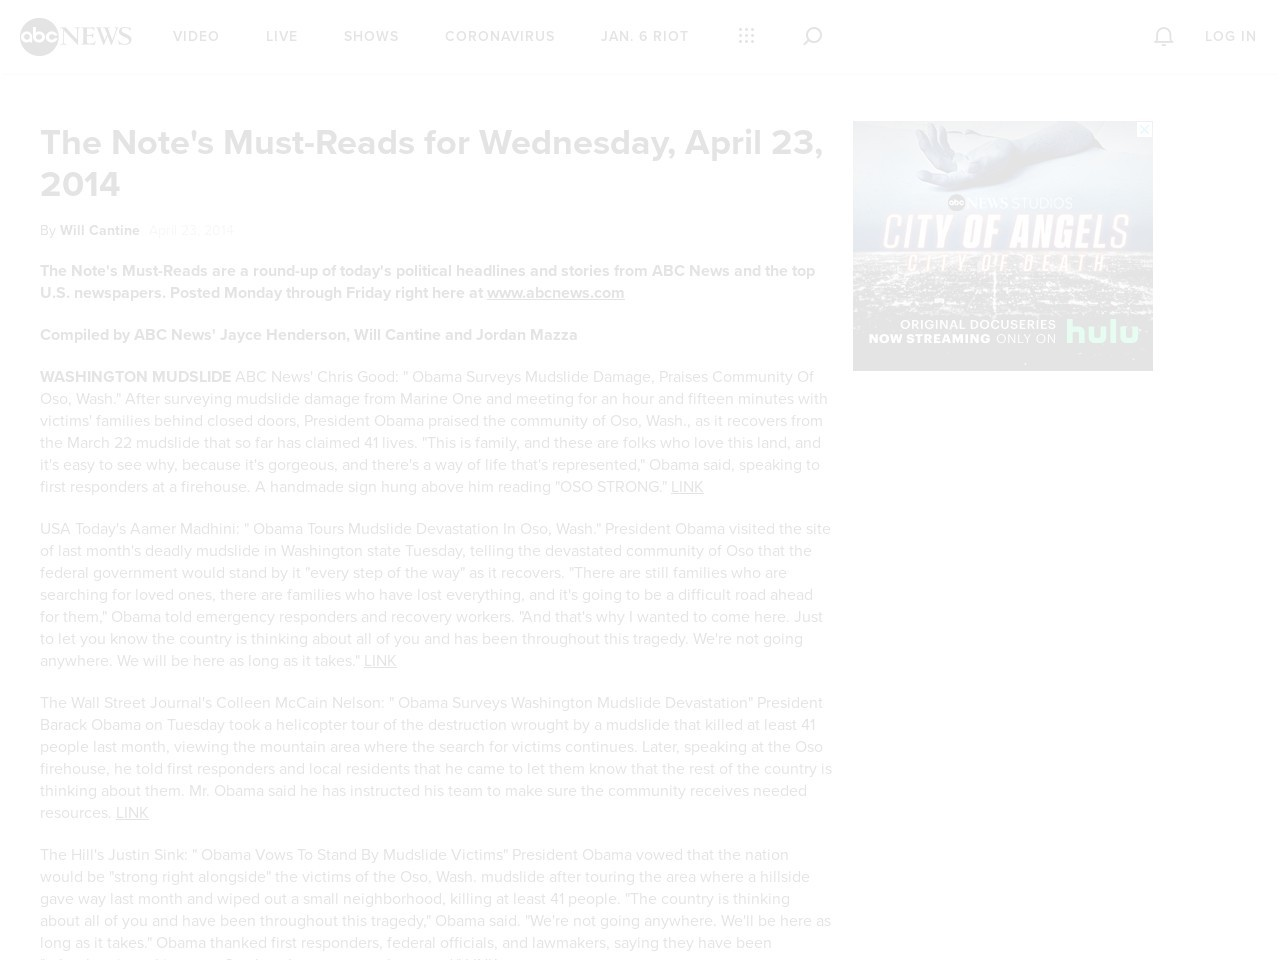 The Note's Must-Reads for Wednesday, April 23, 2014